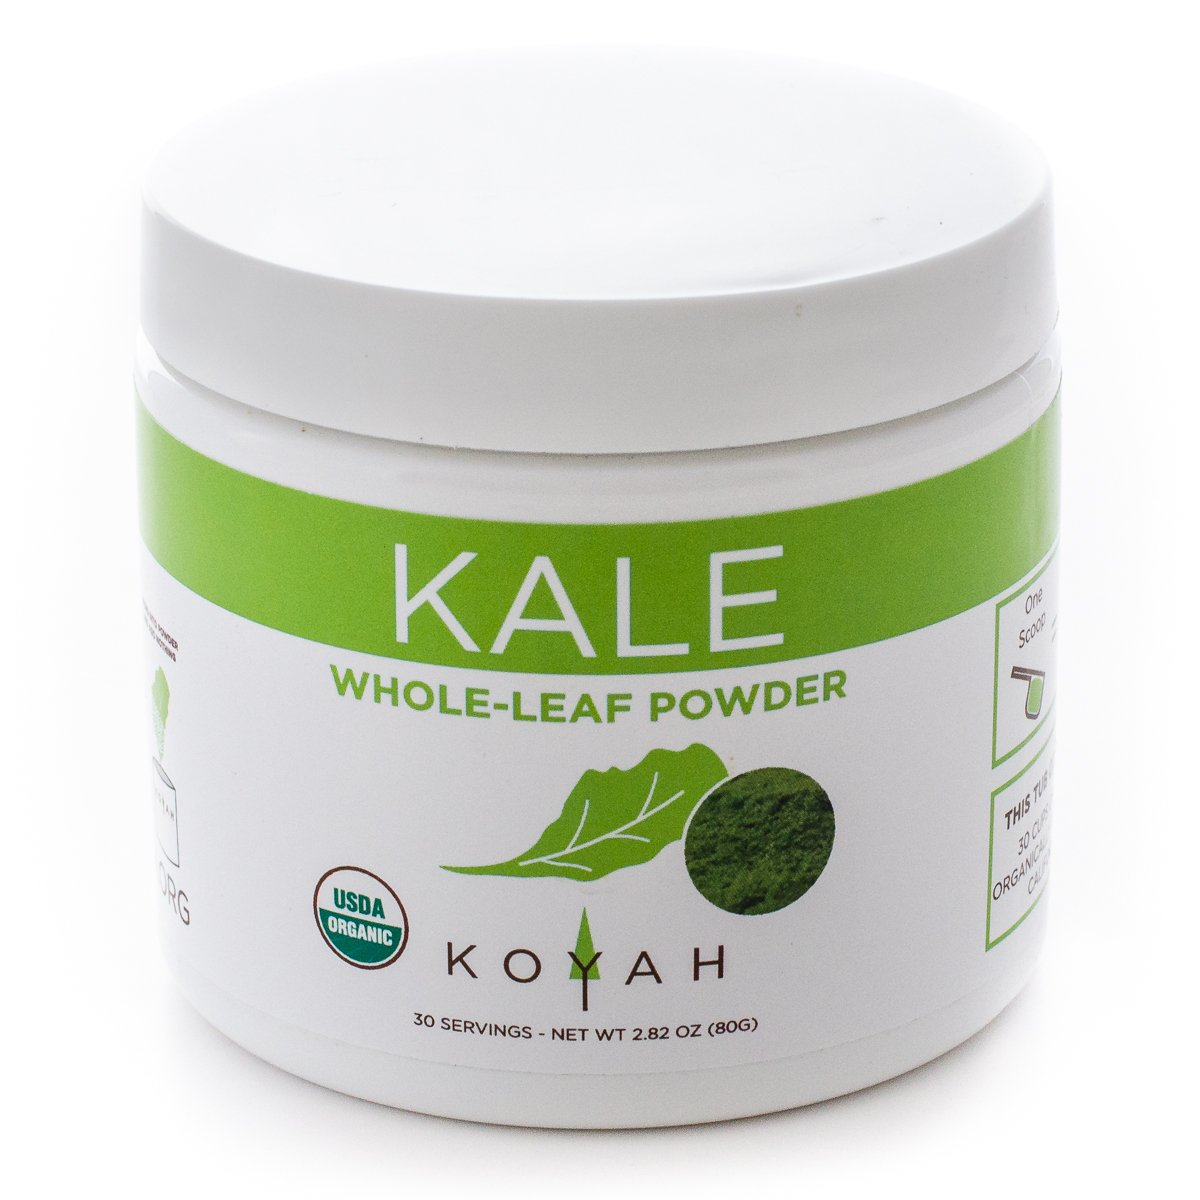 KOYAH - Organic Kale Powder (Equivalent to 30 Cups Fresh): USA Grown, Whole-Leaf Powder, Small-Batch Freeze-dried